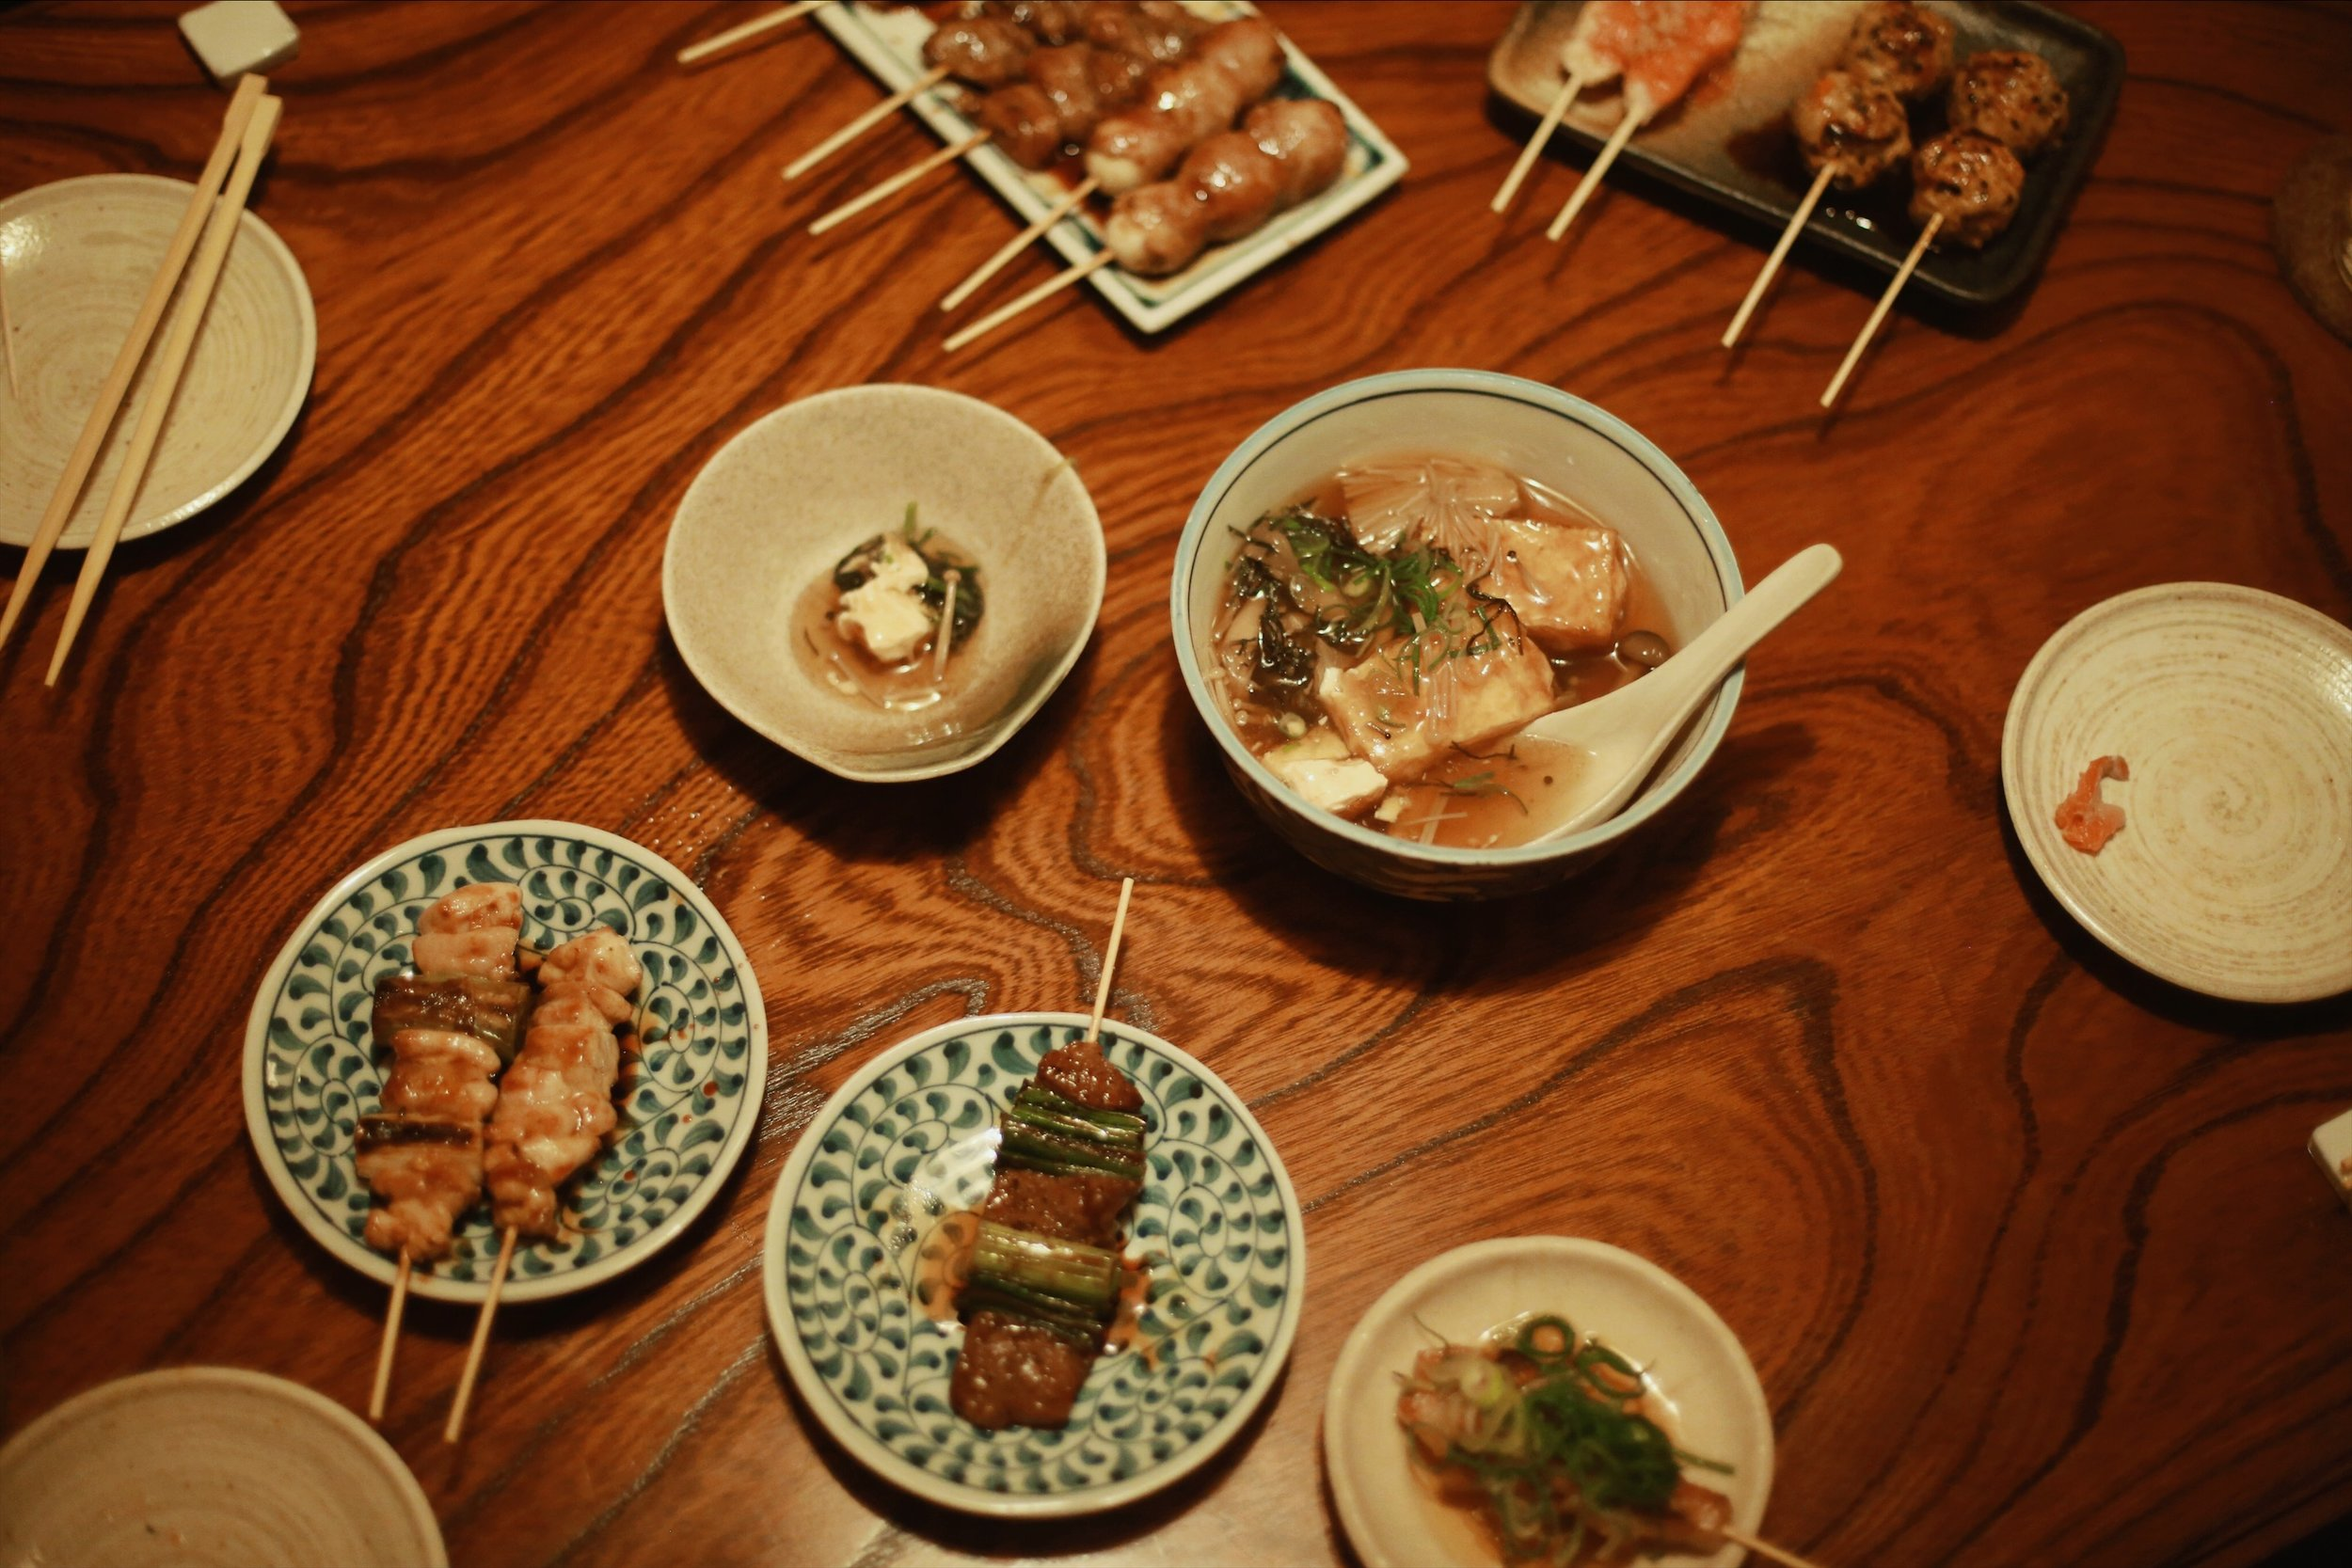 A selection of delicacies, including fatty pork, organ meat, and soft silken tofu.